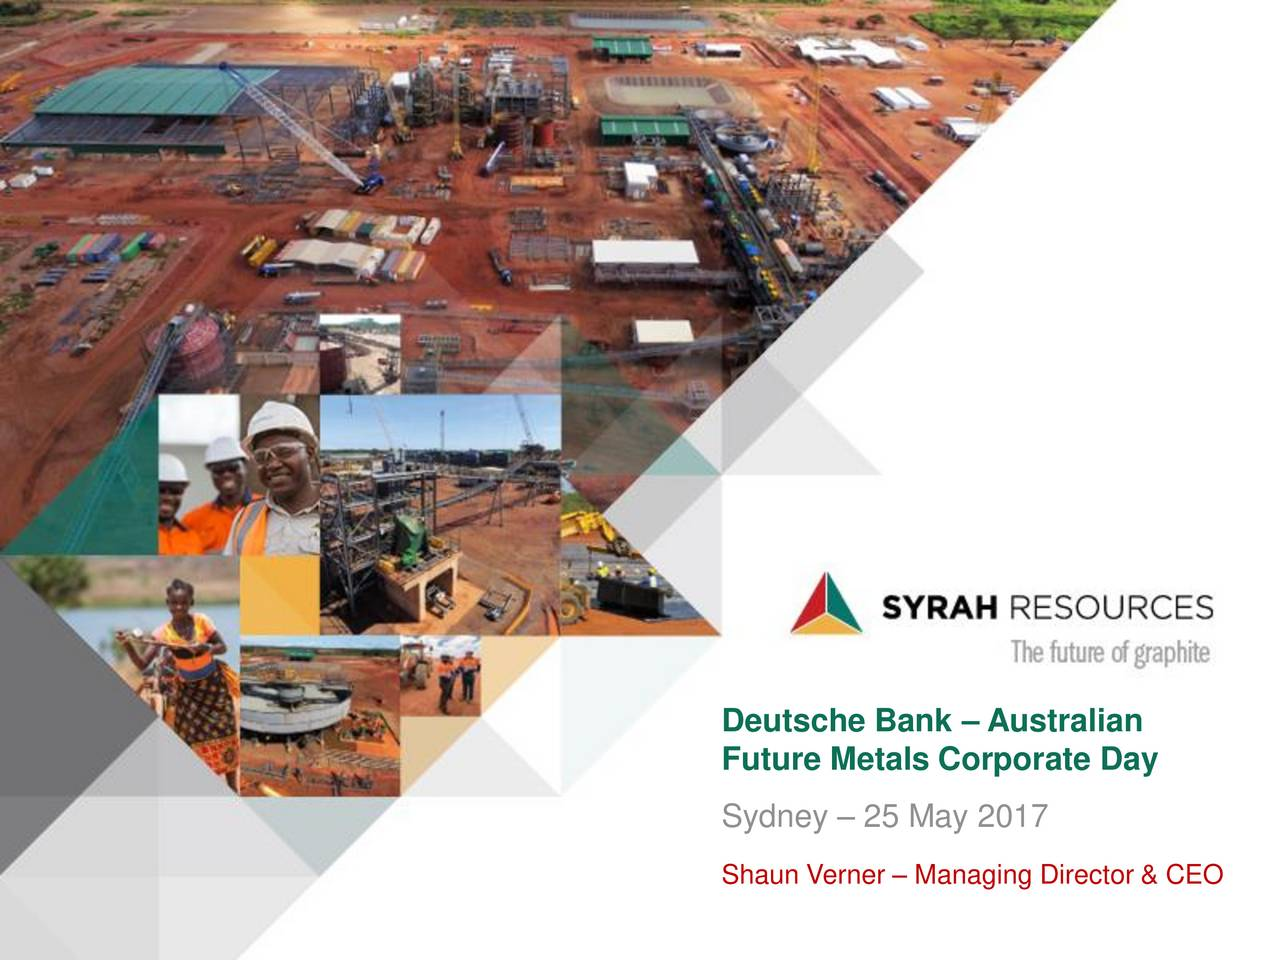 Future Metals Corporate Day Sydney  25 May 2017 Shaun Verner  Managing Director & CEO